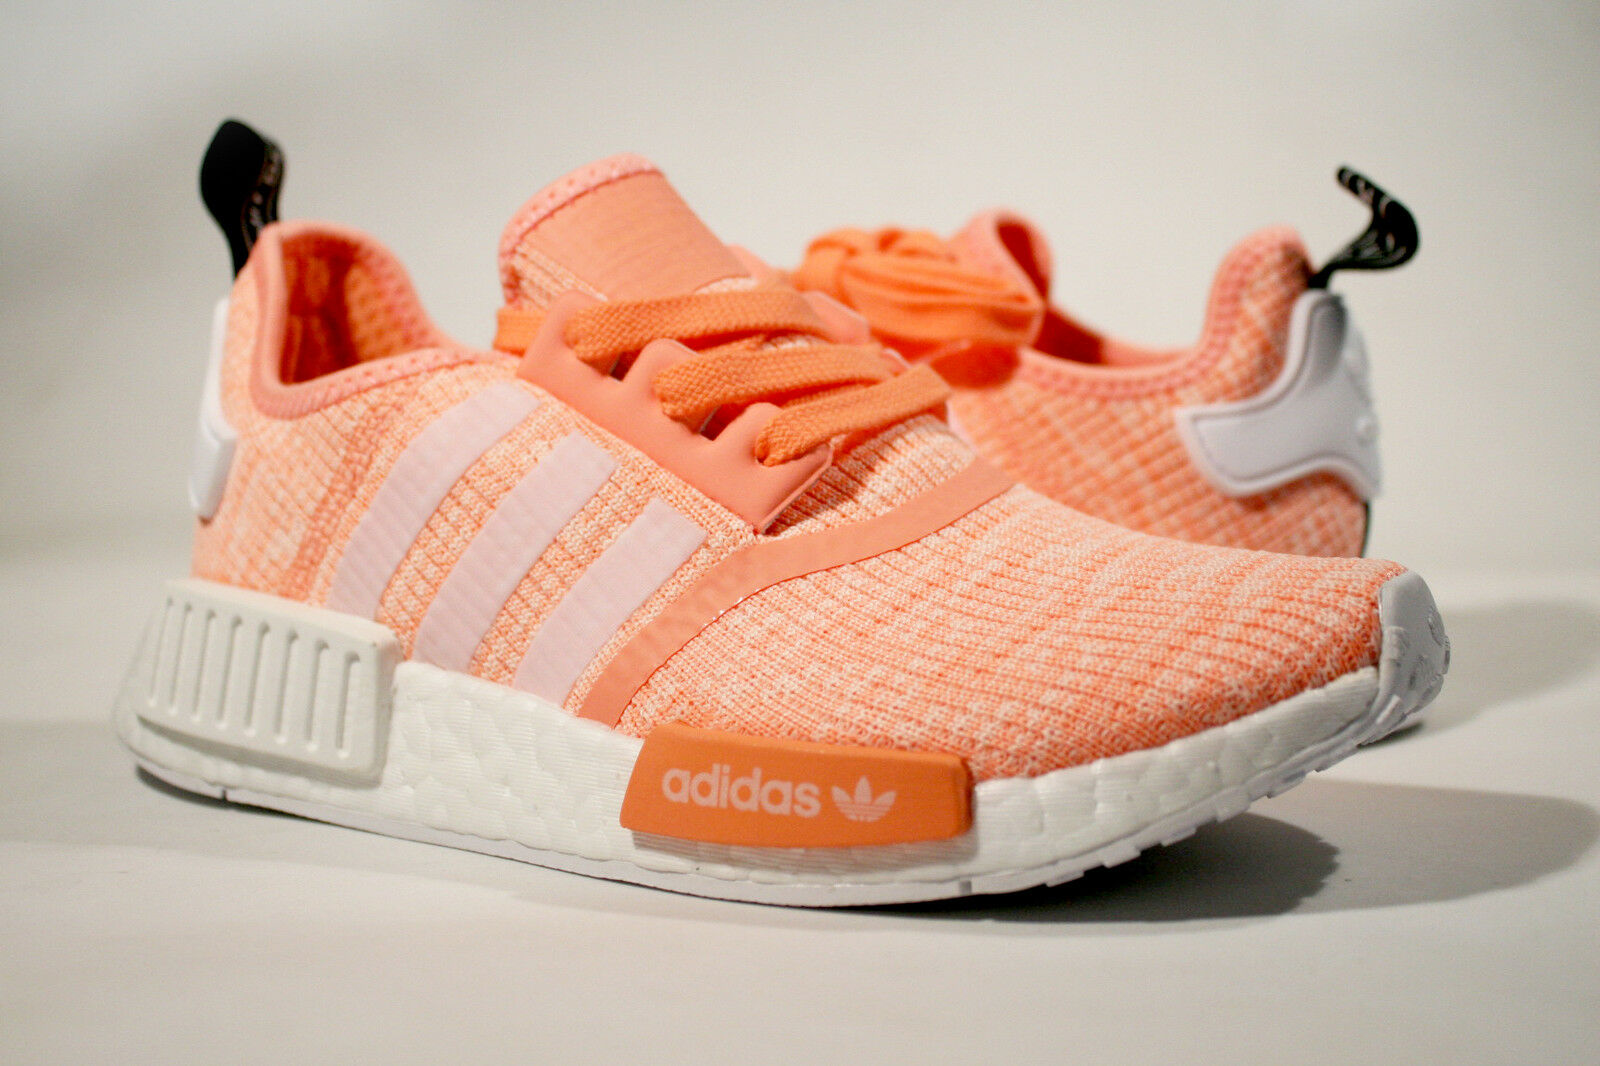 BRAND NEW ADIDAS NMD R1 WOMENS SUN GLOW CORAL orange SIZE 6 - 7.5 PINK BY3034